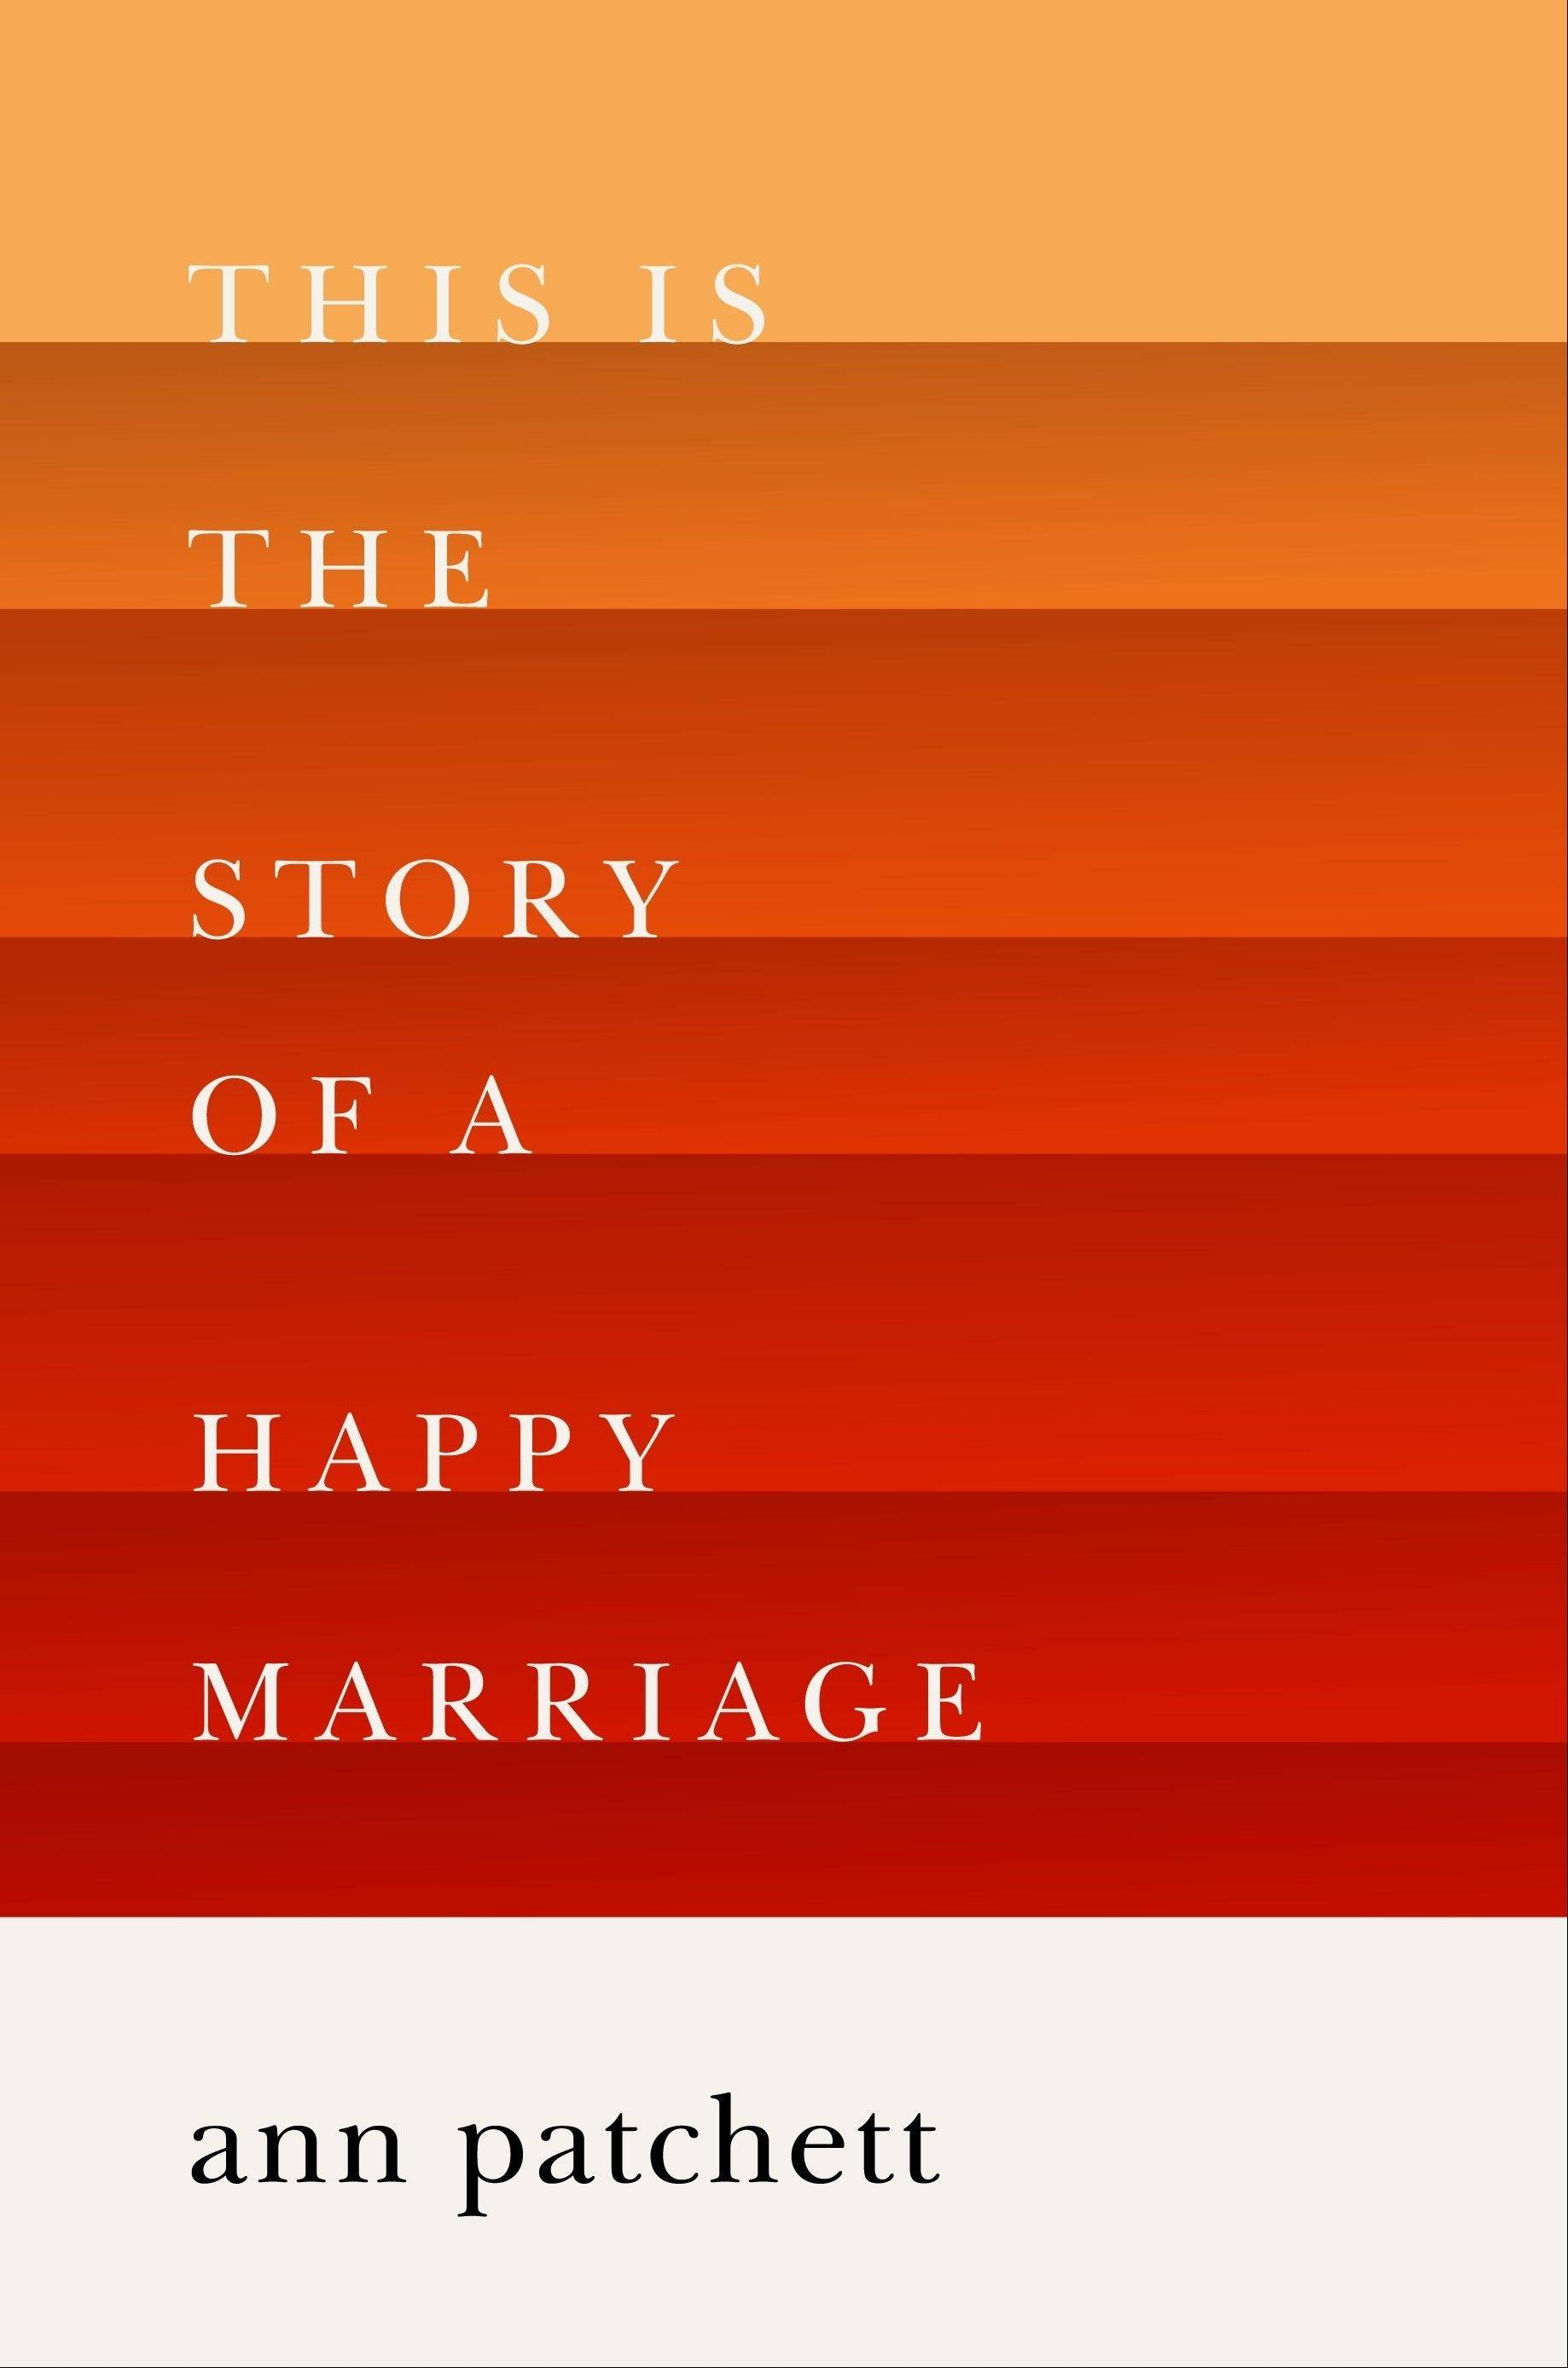 �This is the Story of a Happy Marriage� is a new collection of essays by Ann Patchett.